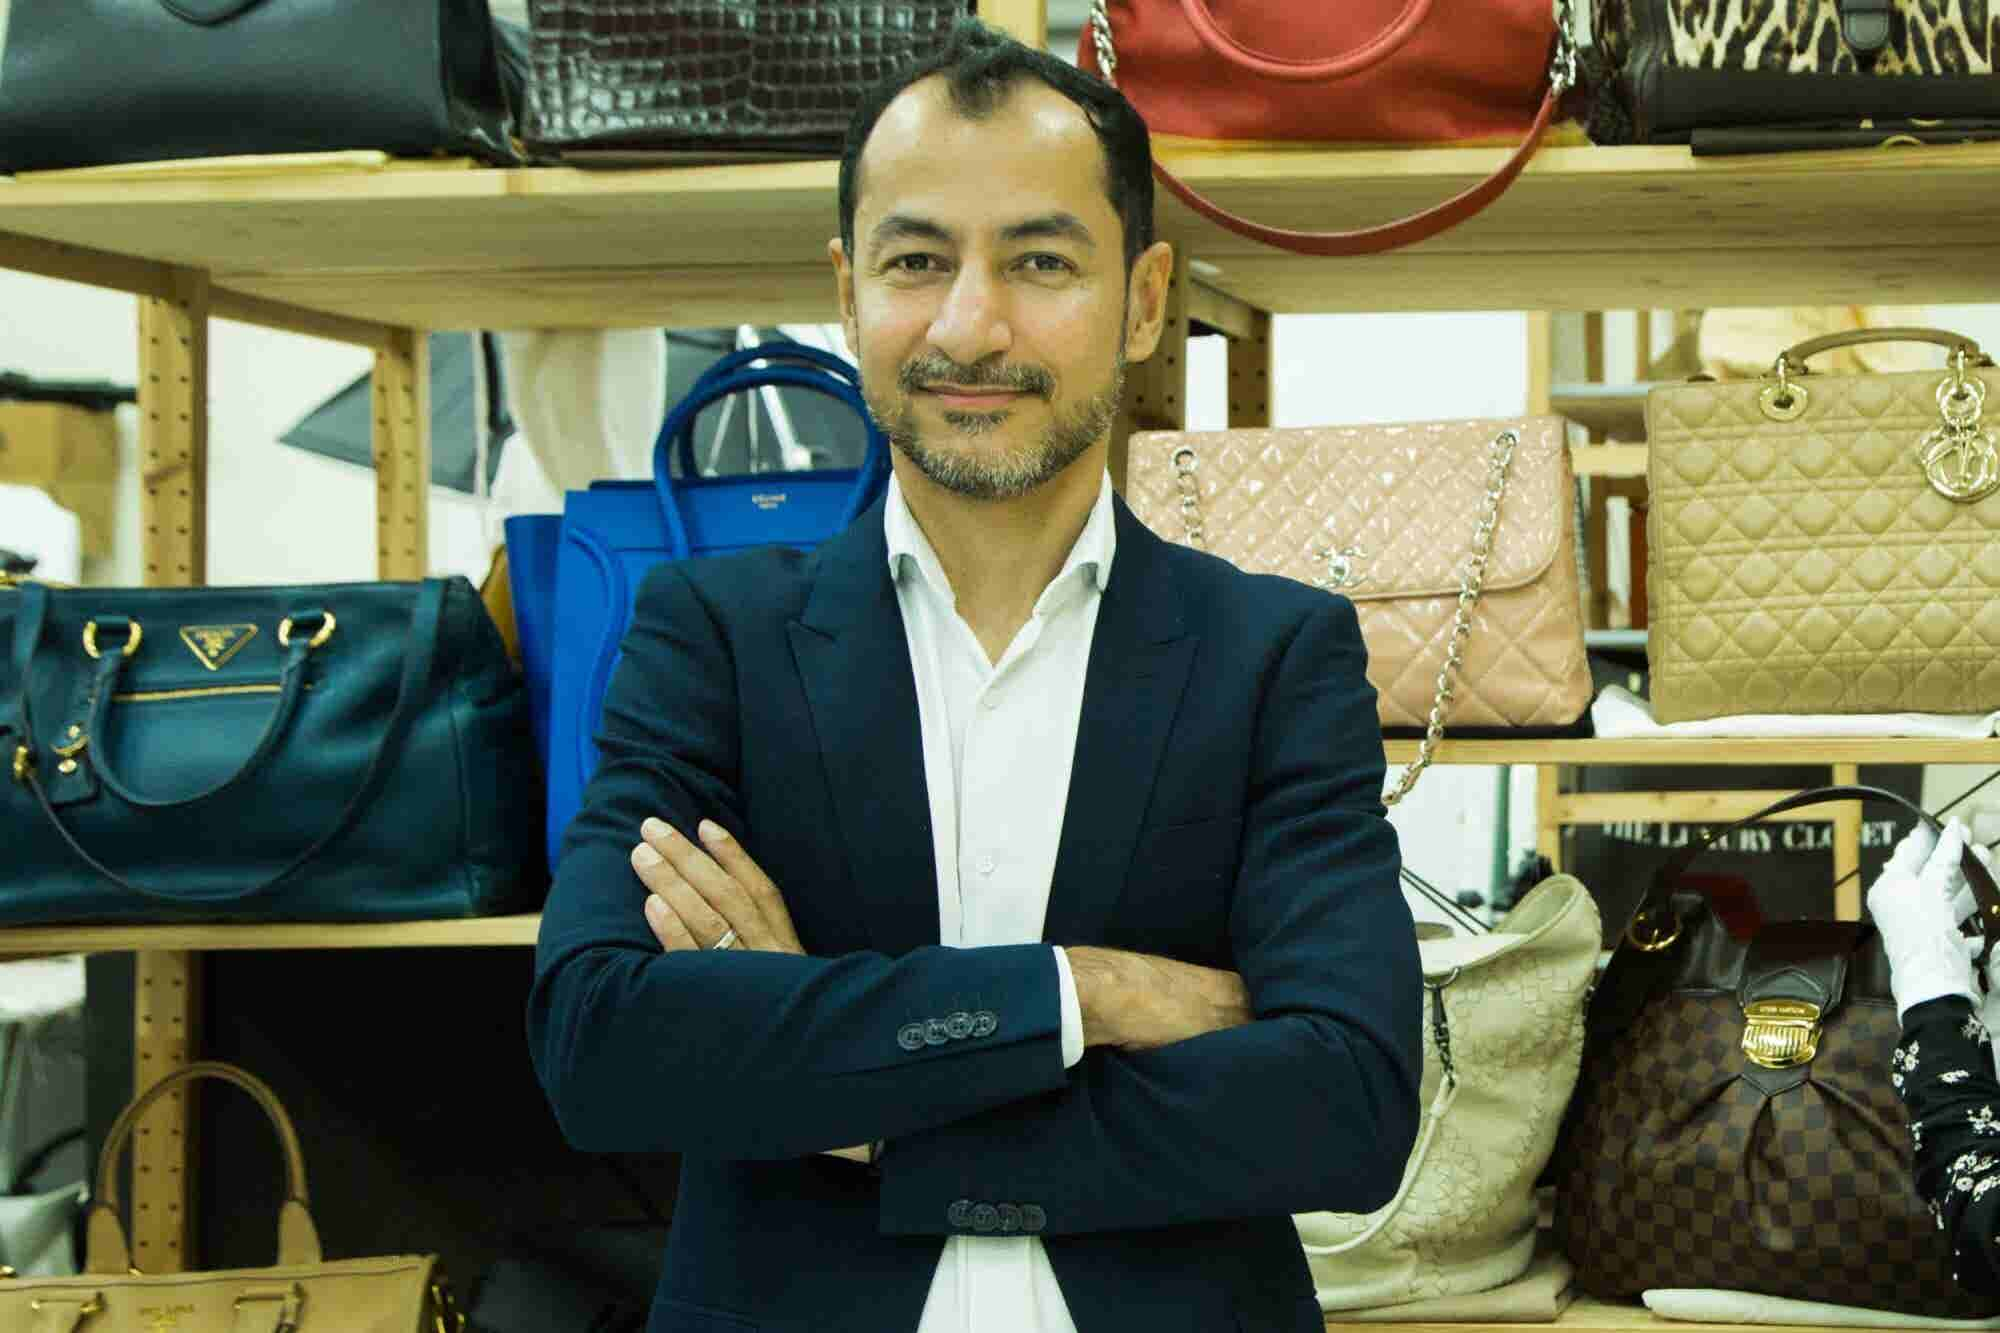 We Got Funded: The Luxury Closet Founder Kunal Kapoor On The Startup's US$8.7 Million Growth Funding